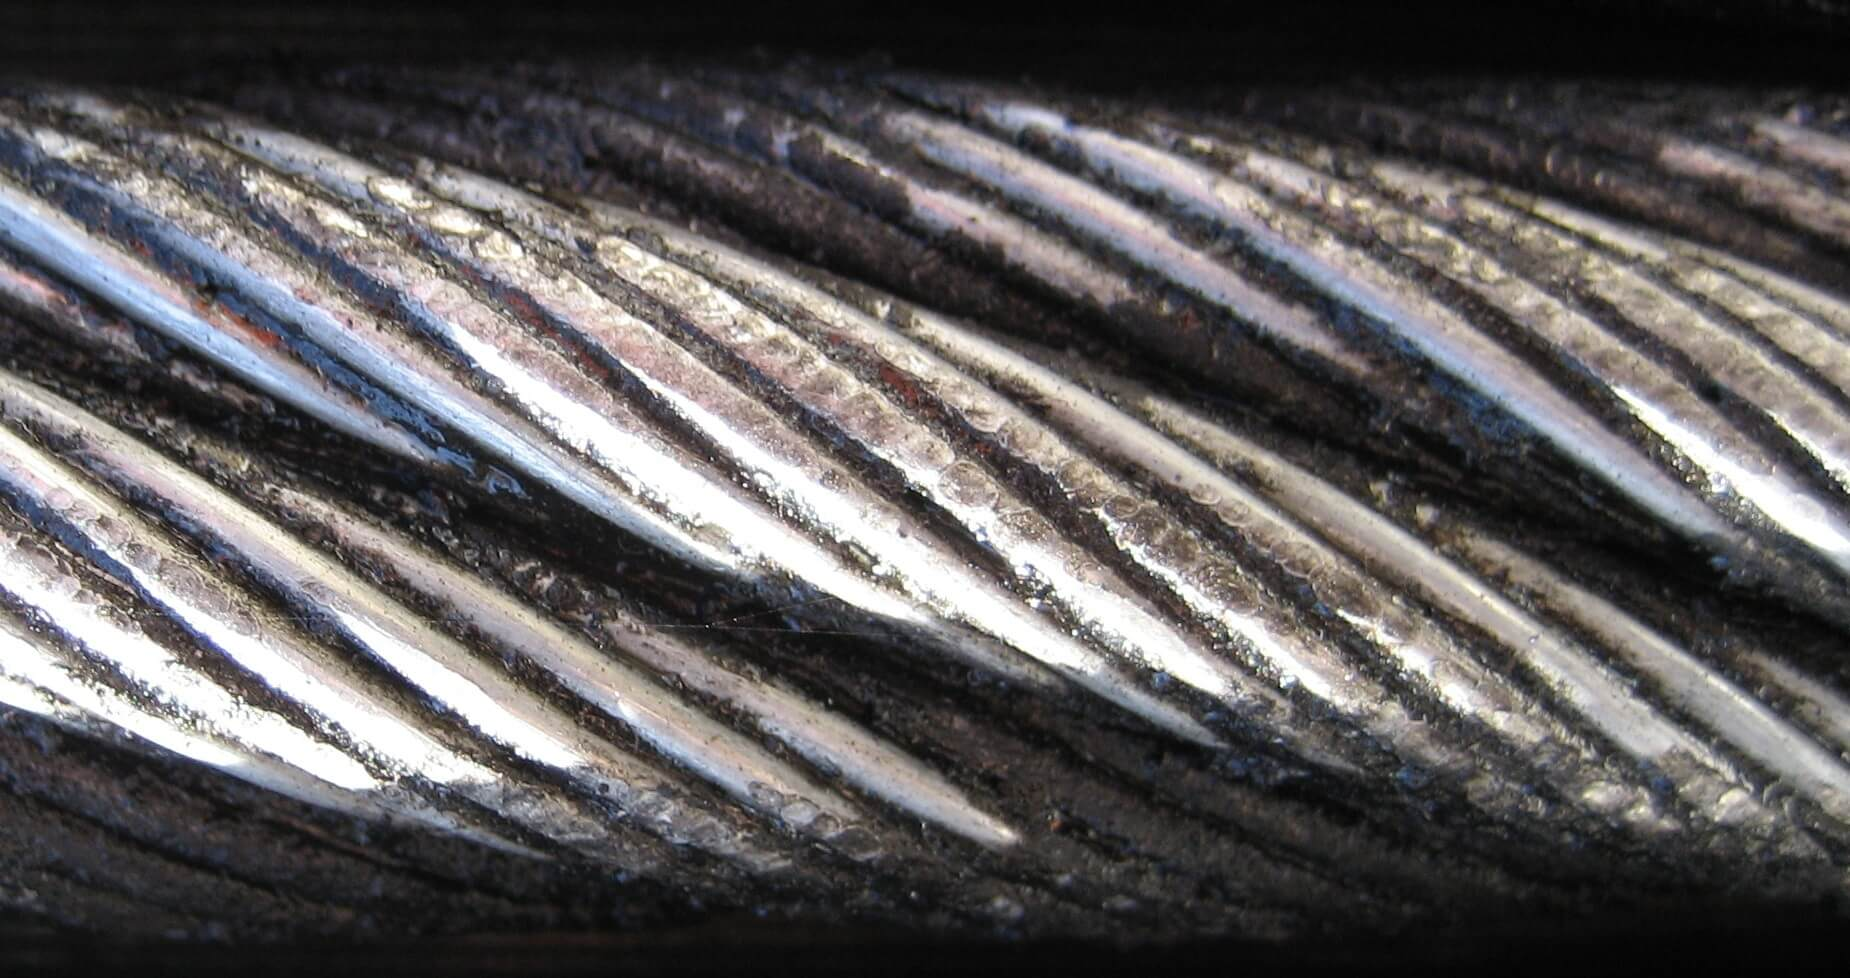 Wire Rope Replacement Advice and Discard Criteria | Rope Services Direct